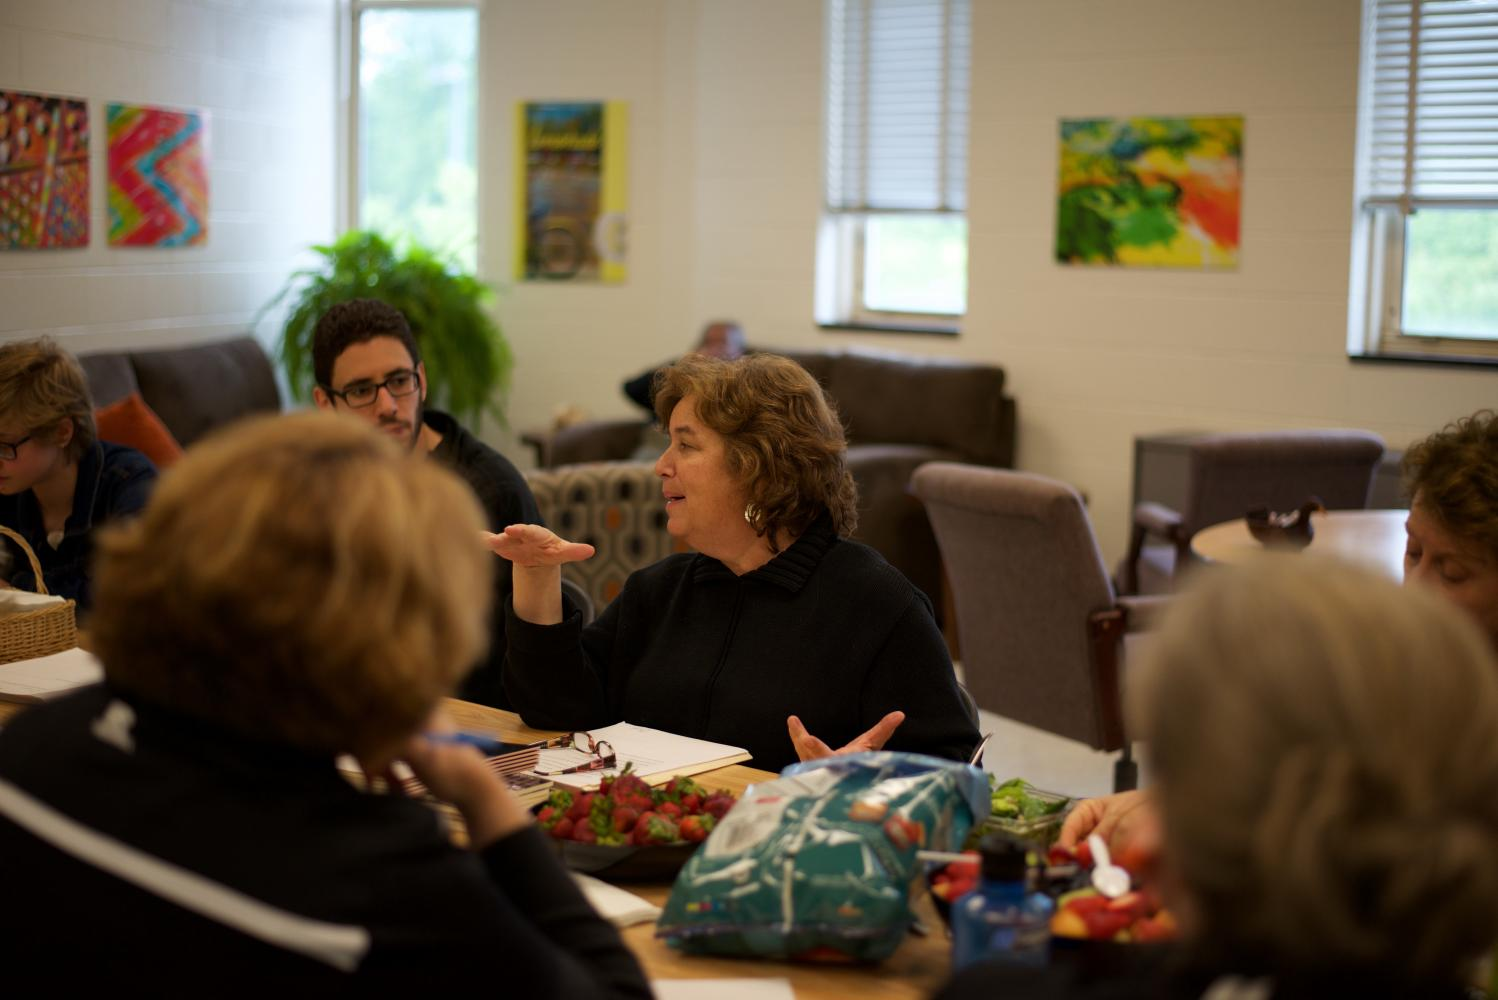 Poet Elizabeth Rees speaks to teachers during sixth lunch on Friday, May 12 about strategies for teaching poetry in schools. Rees visited English and creative writing classes May 8-12 in order to better educate students and teachers on poetry. Photo by Annabelle Gordon.